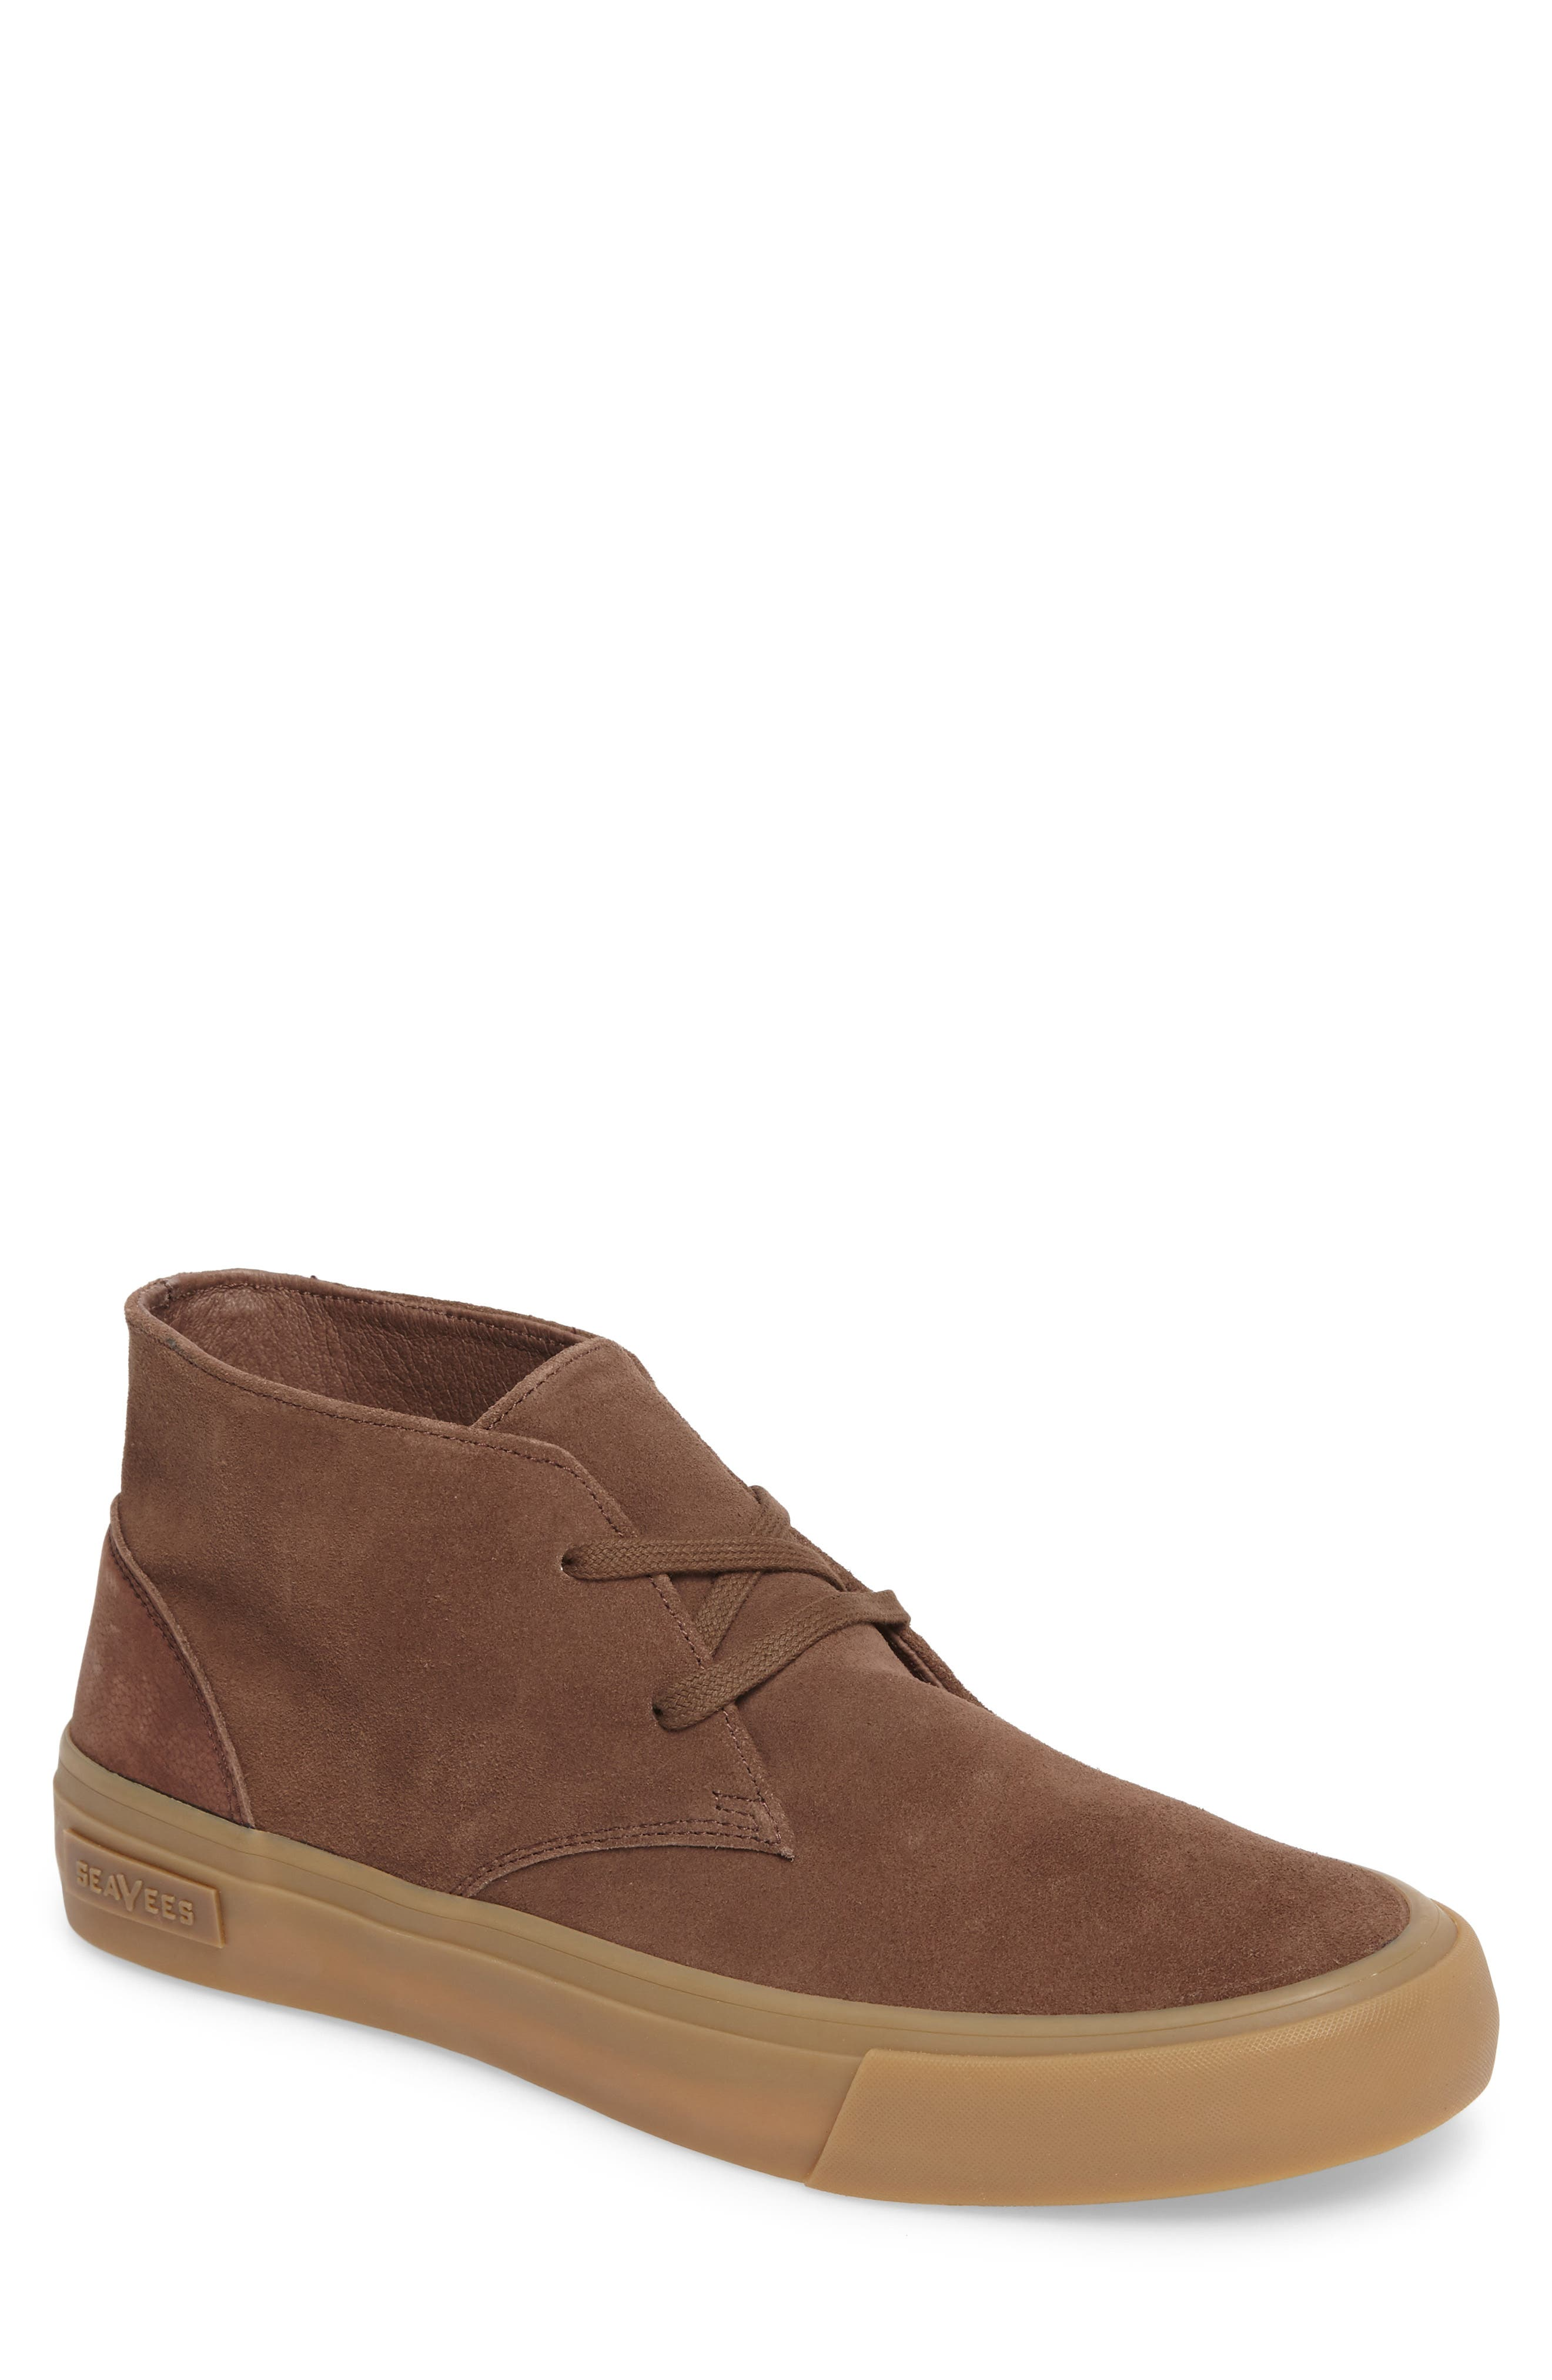 Main Image - Seavees Maslon Chukka Boot (Men)